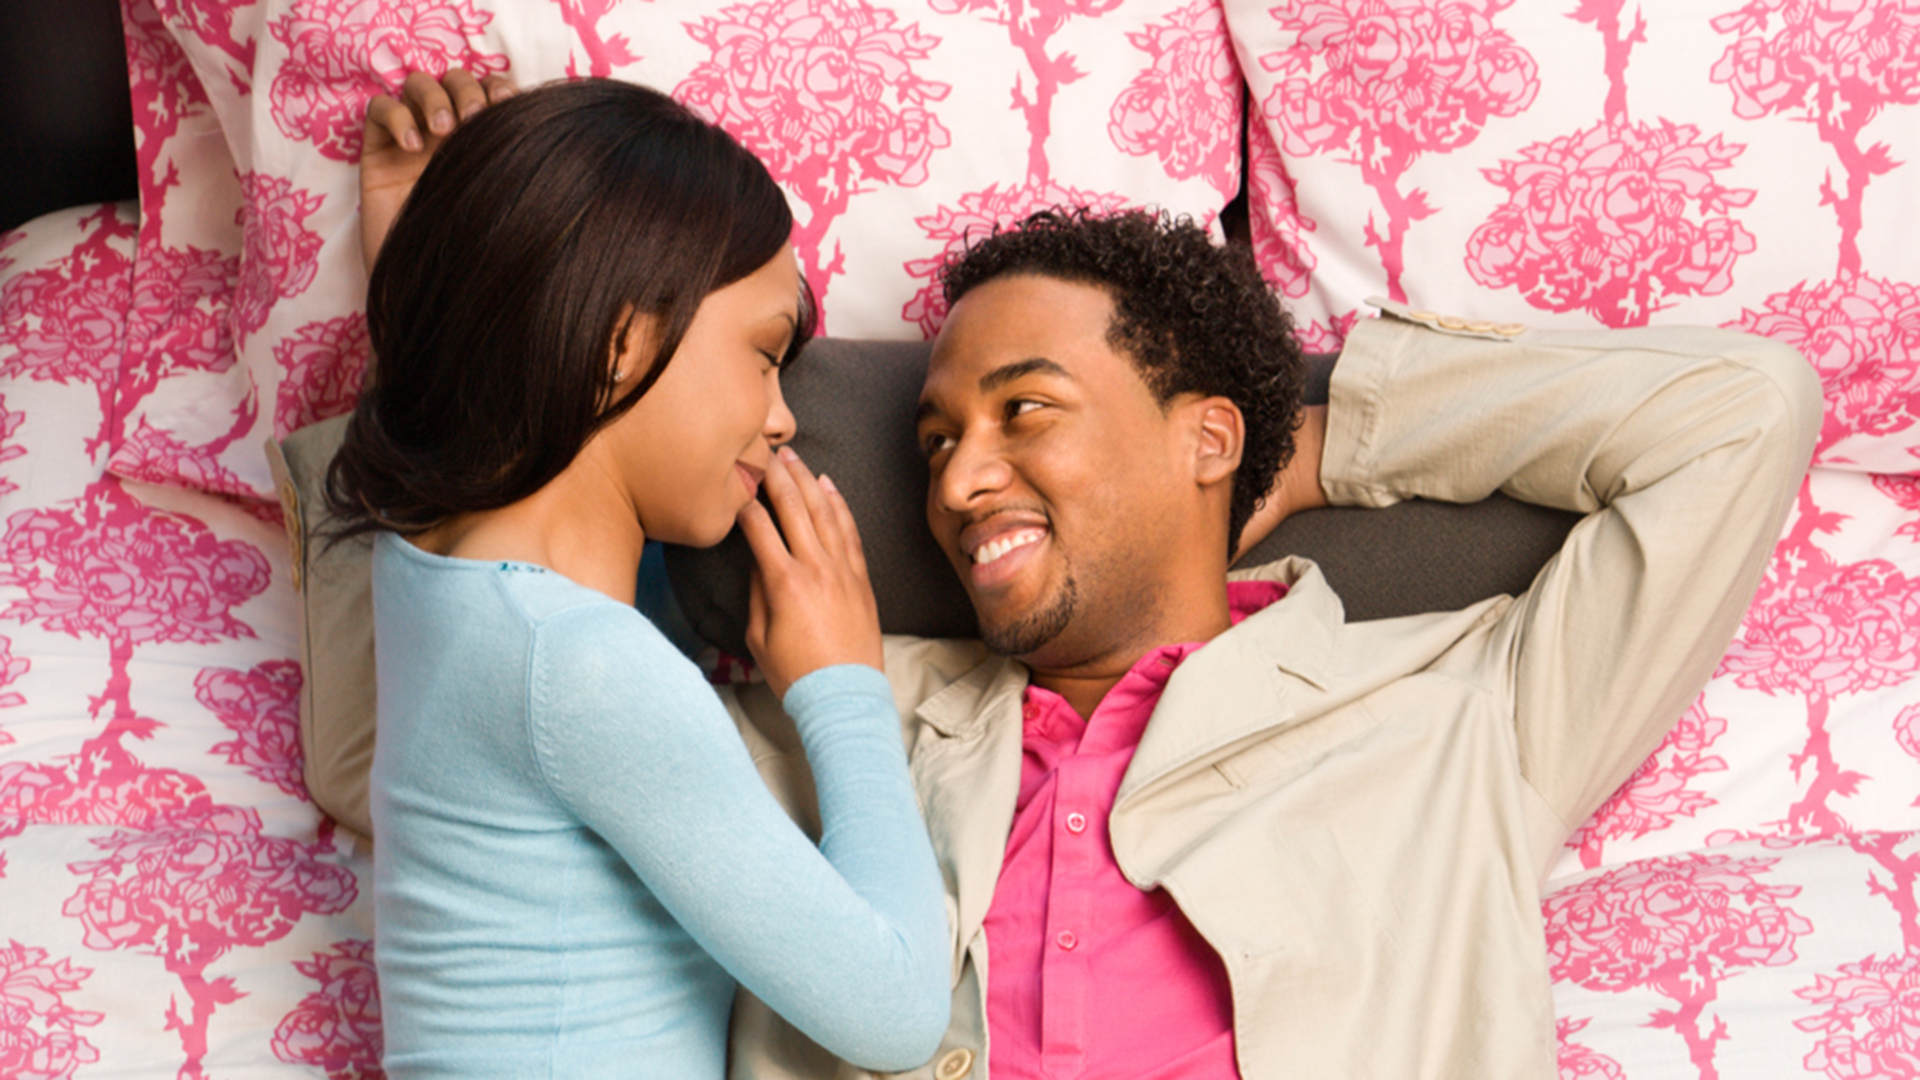 How to know if a girl your dating really likes you